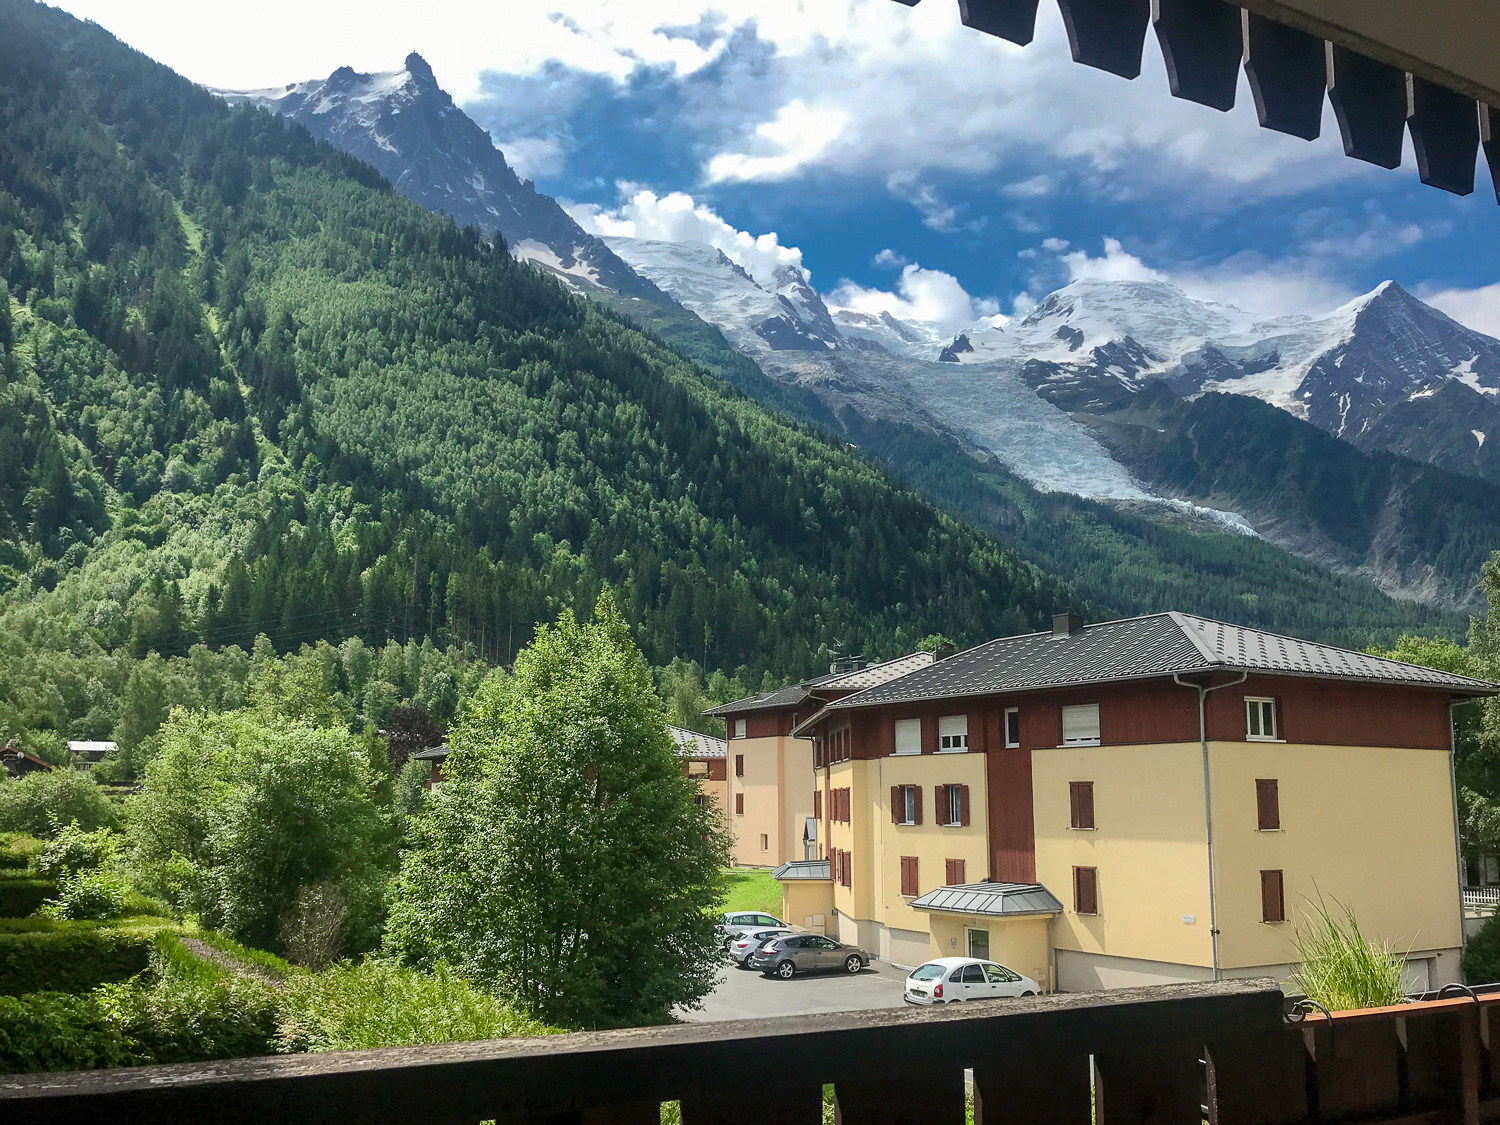 3 bedroom apartment for sale in Chamonix centre with stunning views from terrace